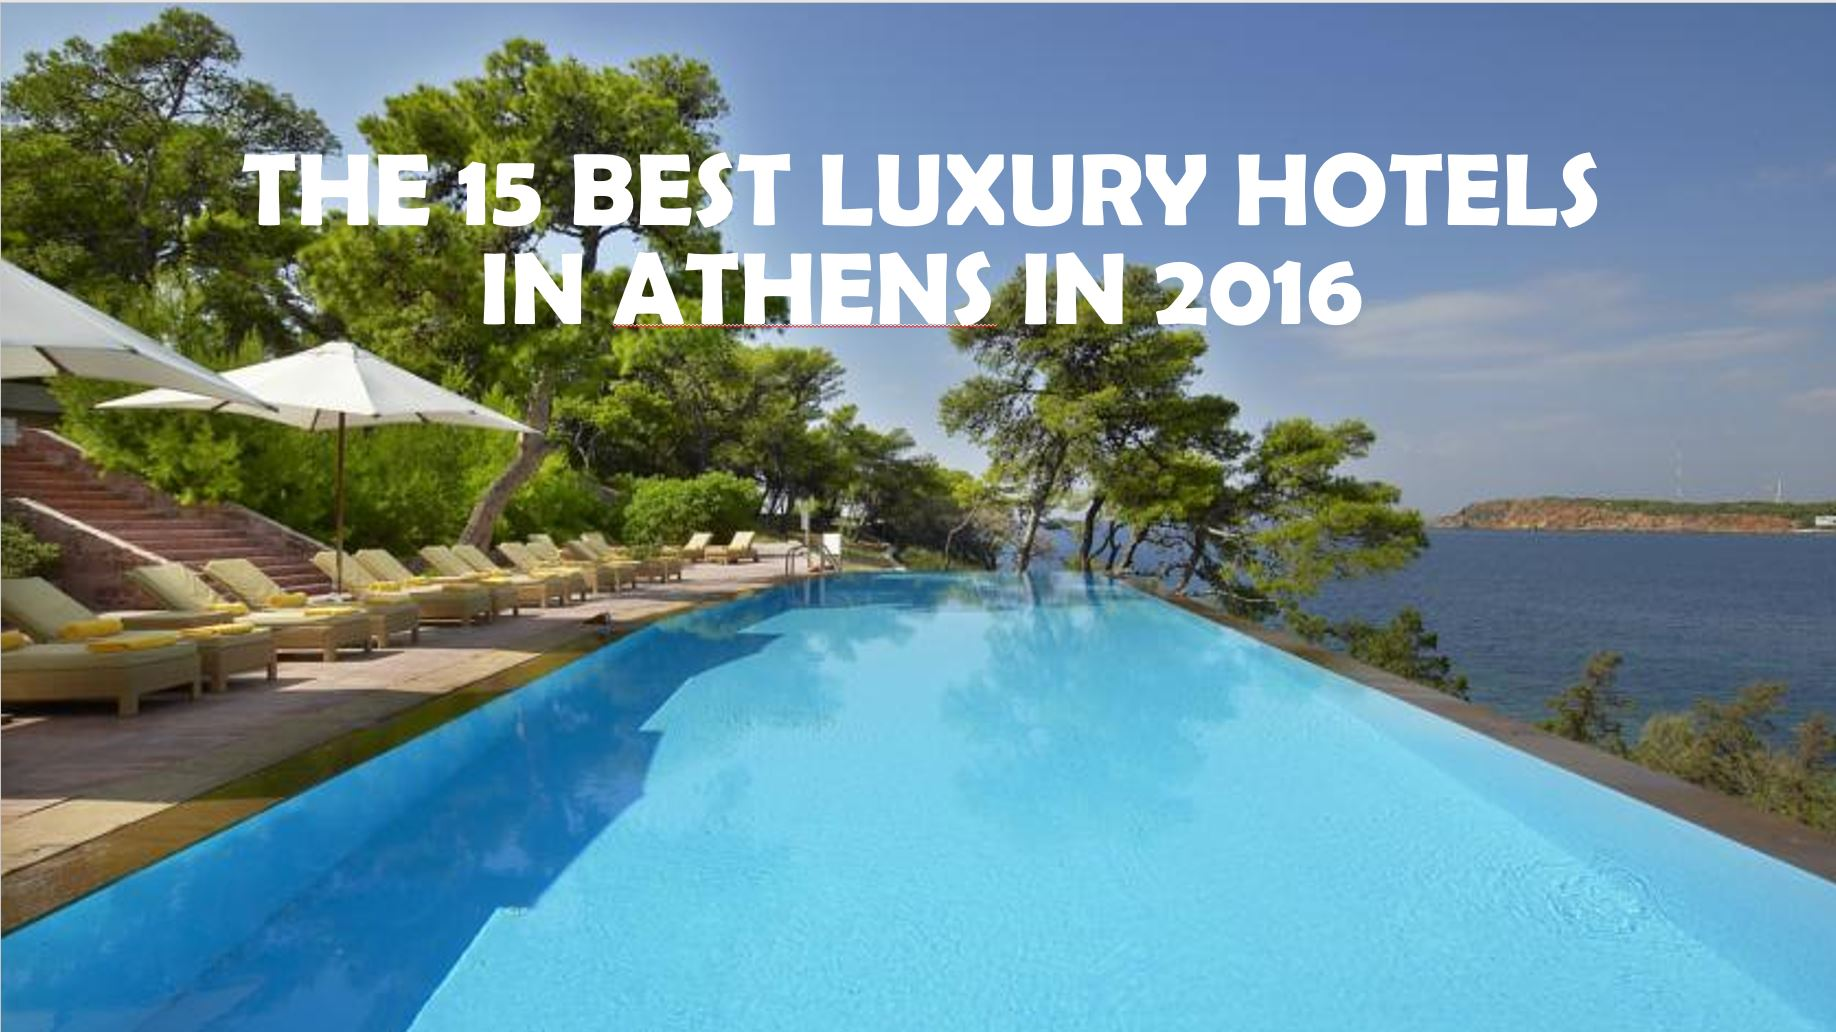 The 15 best luxury hotels in athens greece in 2016 guidora for The leading hotels